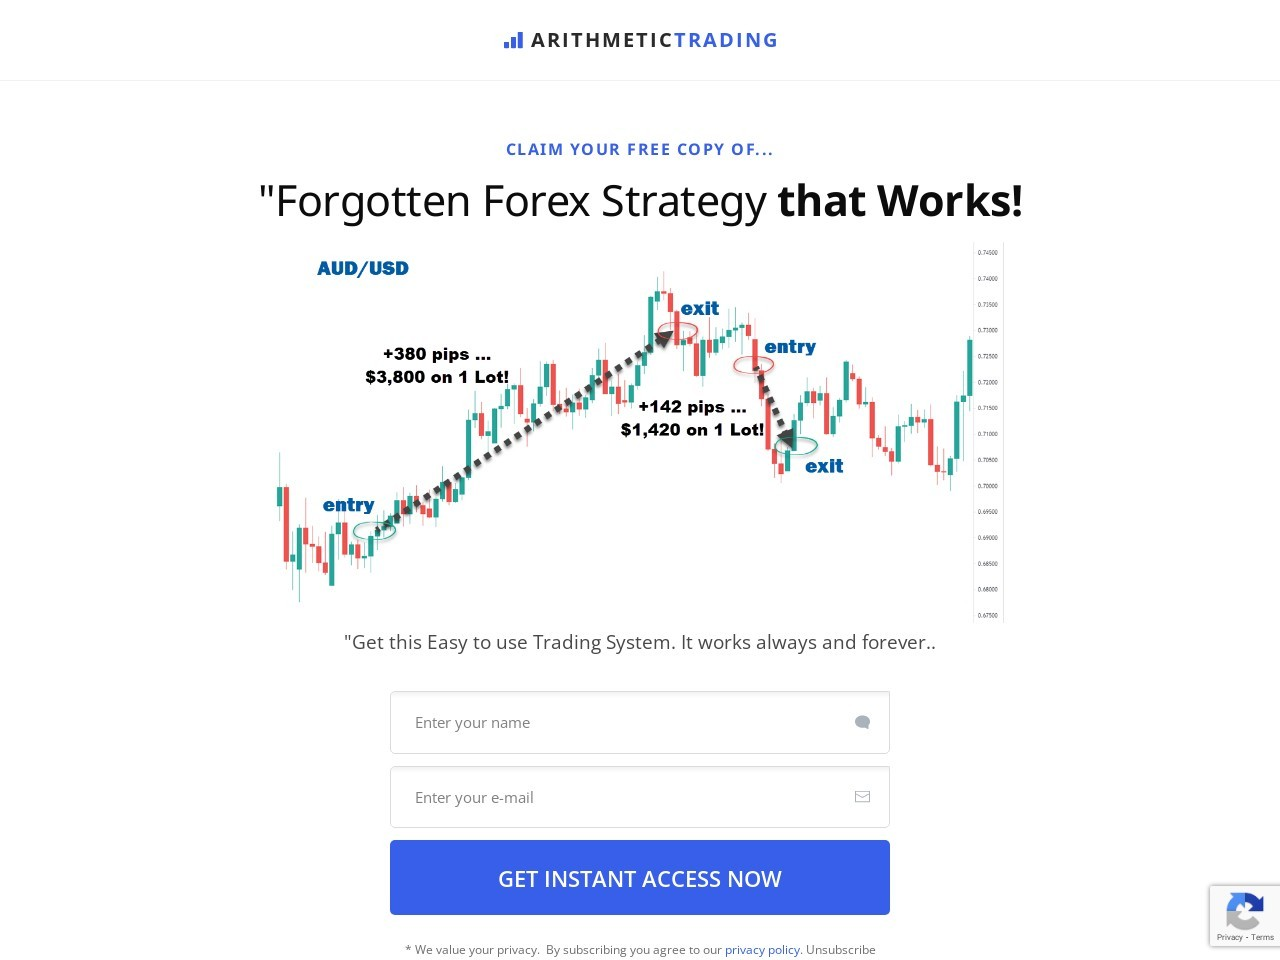 ArithmeticTrading